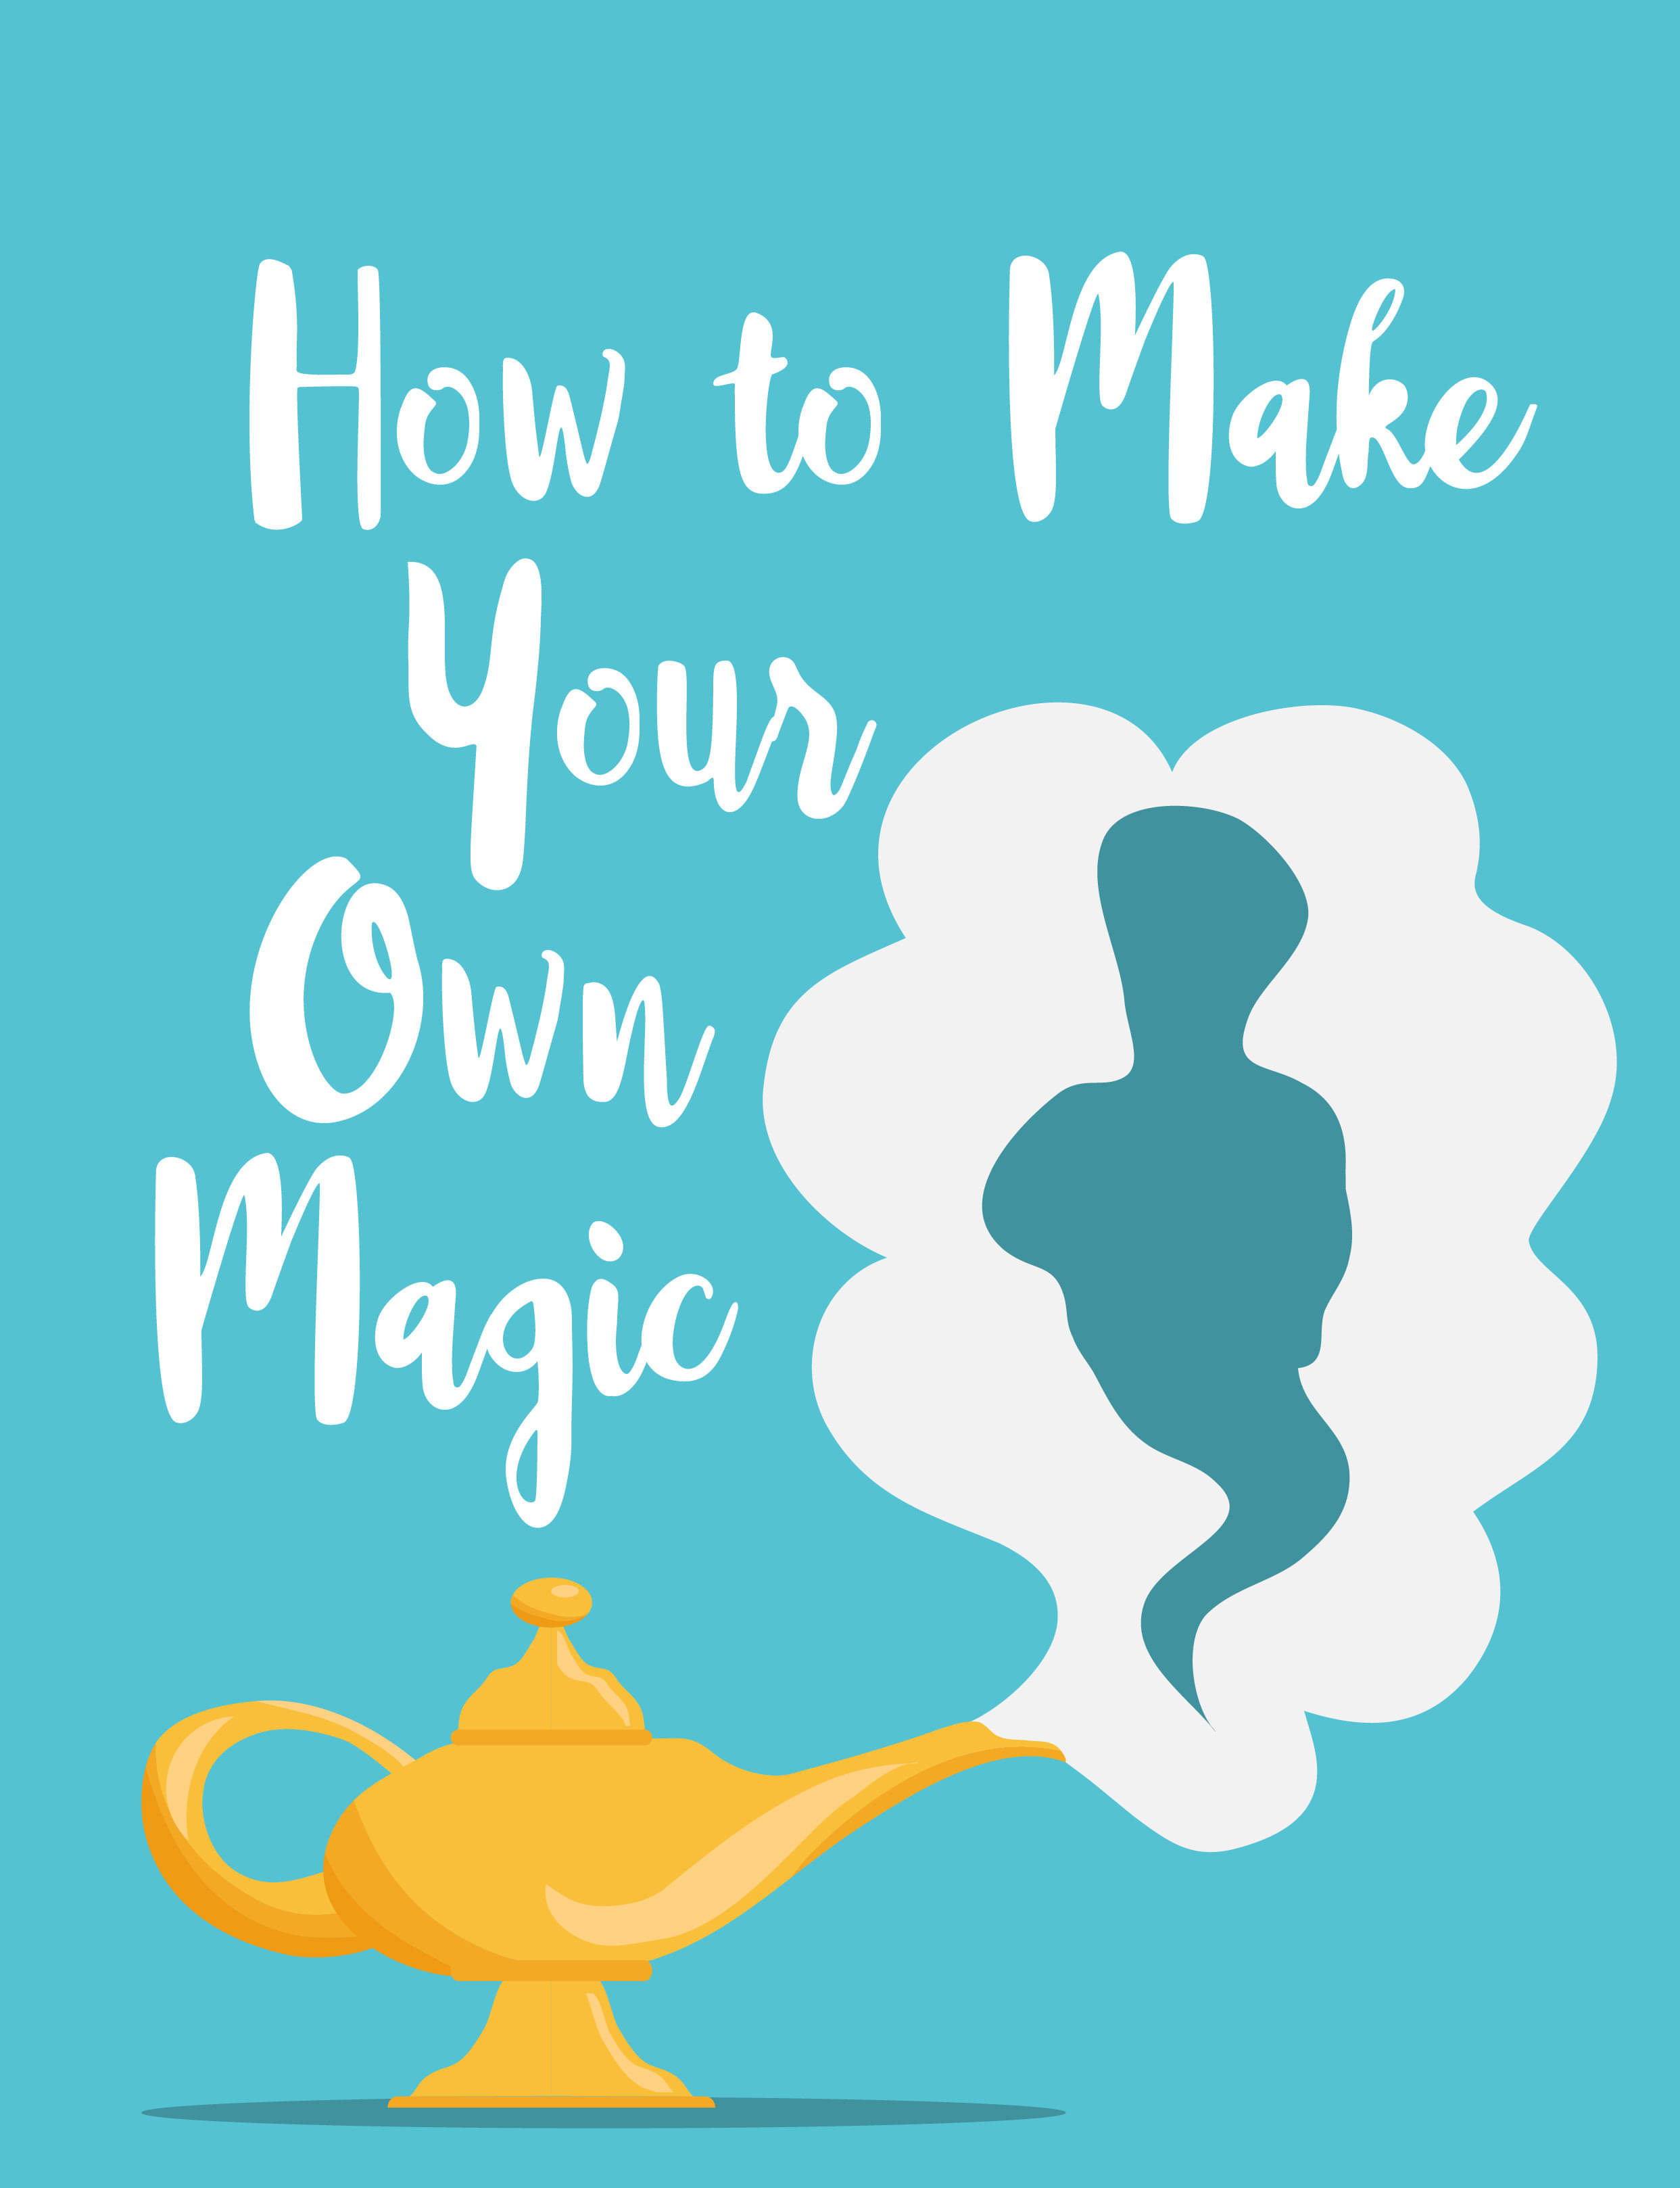 How to Make Your Own Magic